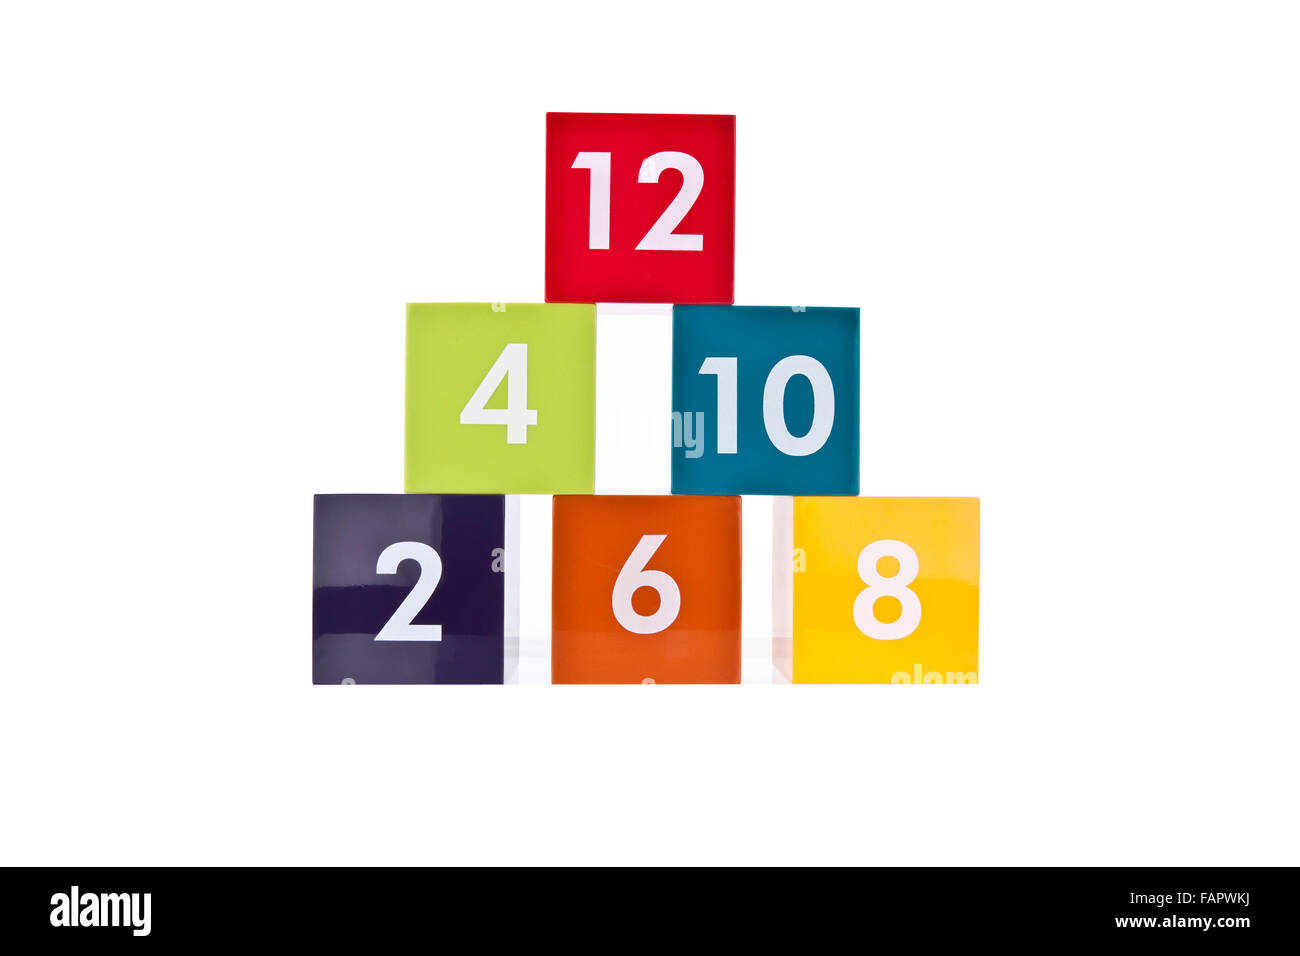 Colored Even Number Blocks on a white background - Stock Image